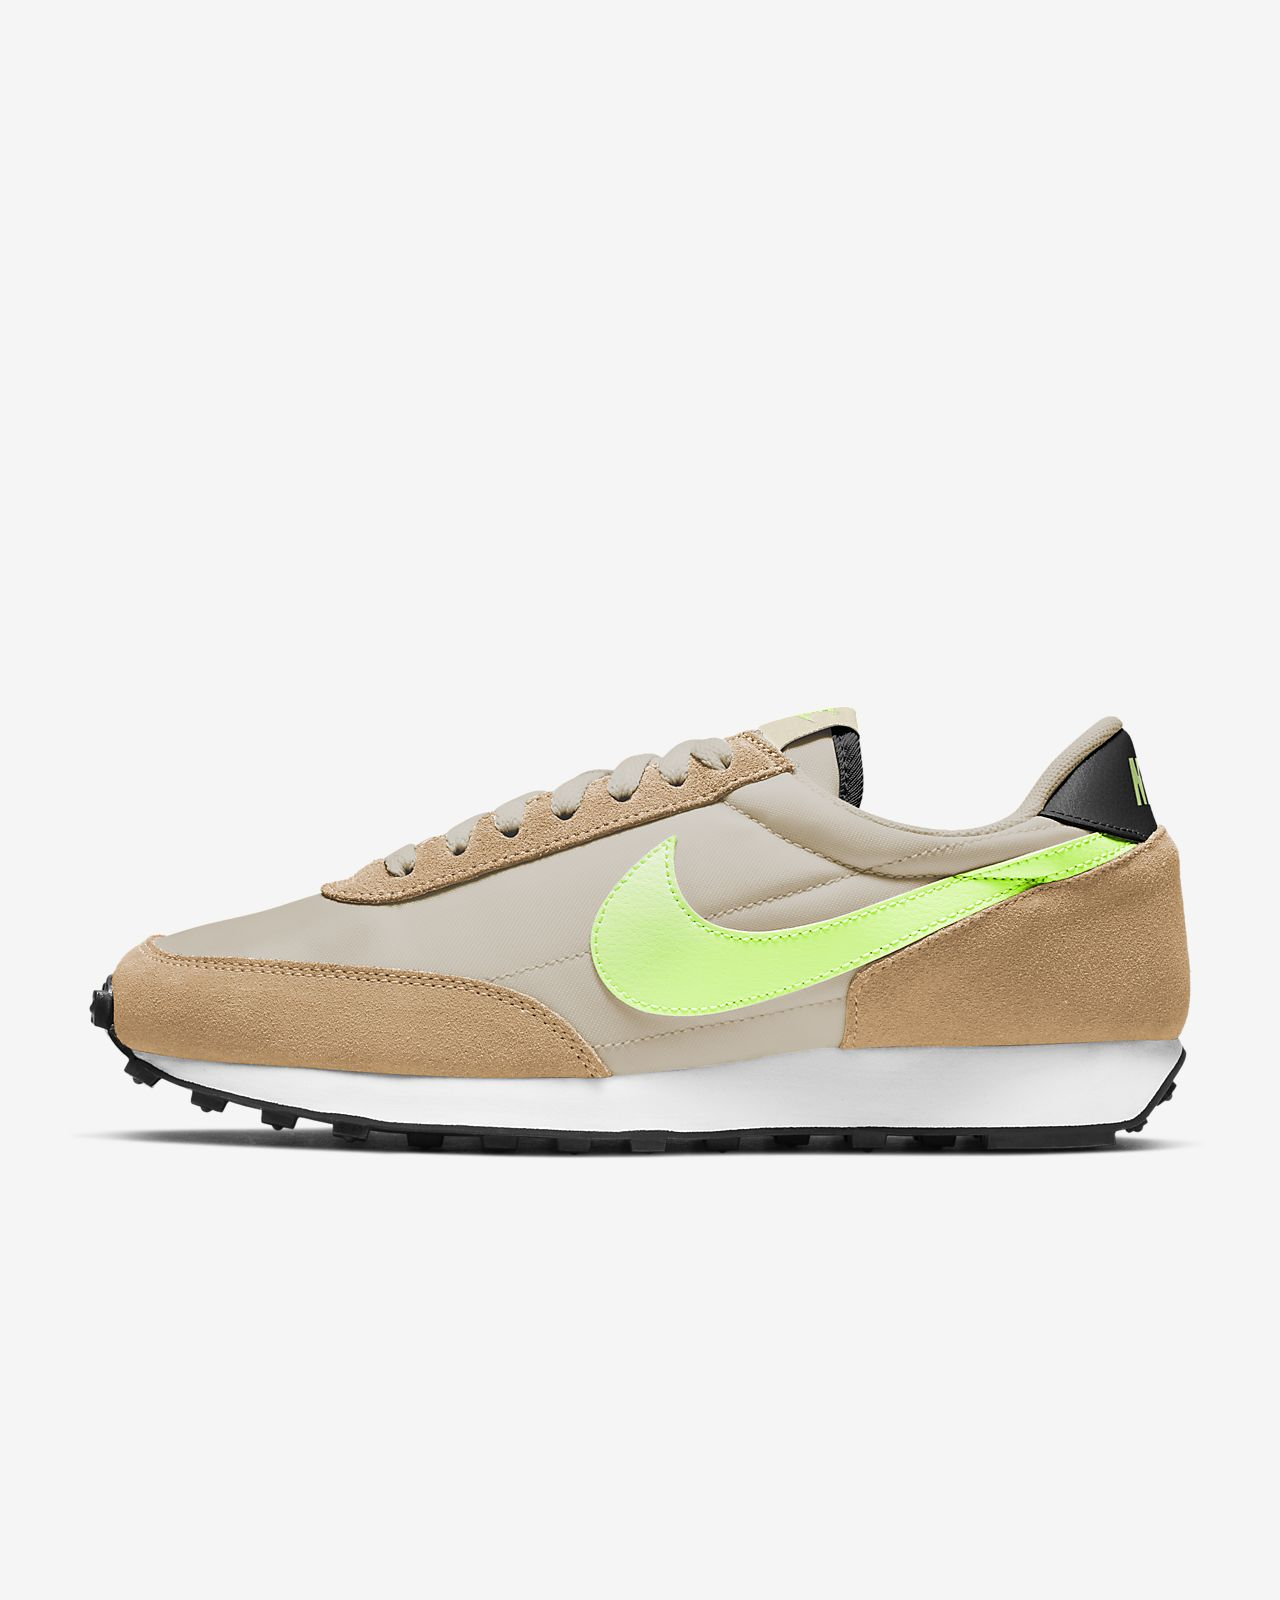 Chaussure Nike Daybreak pour Femme